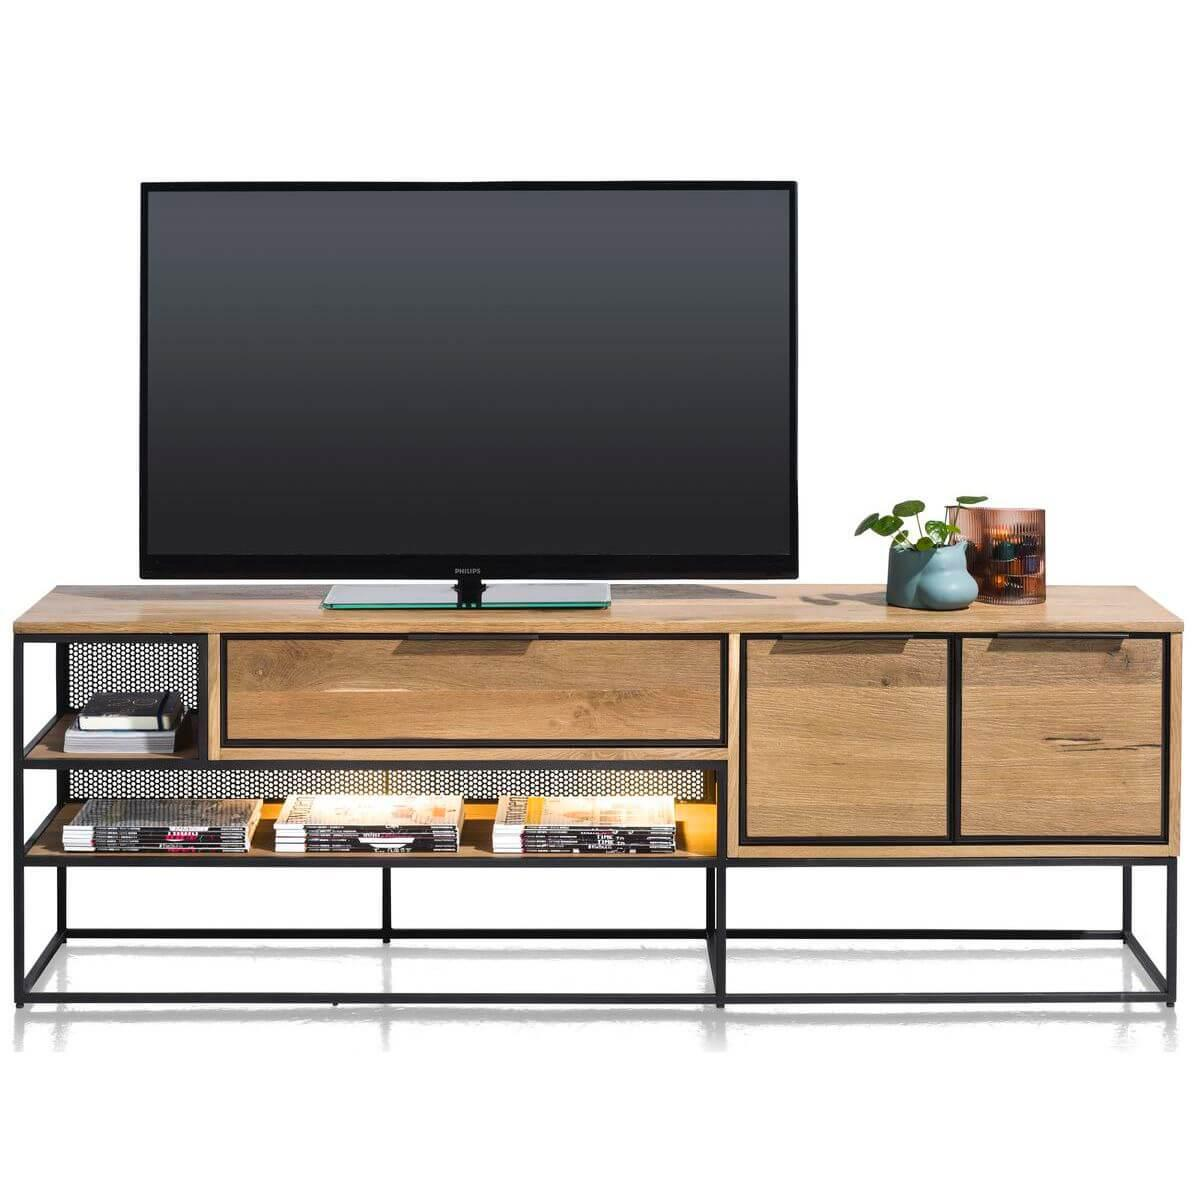 Meuble TV 180cm CITY Henders & Hazel railway brown